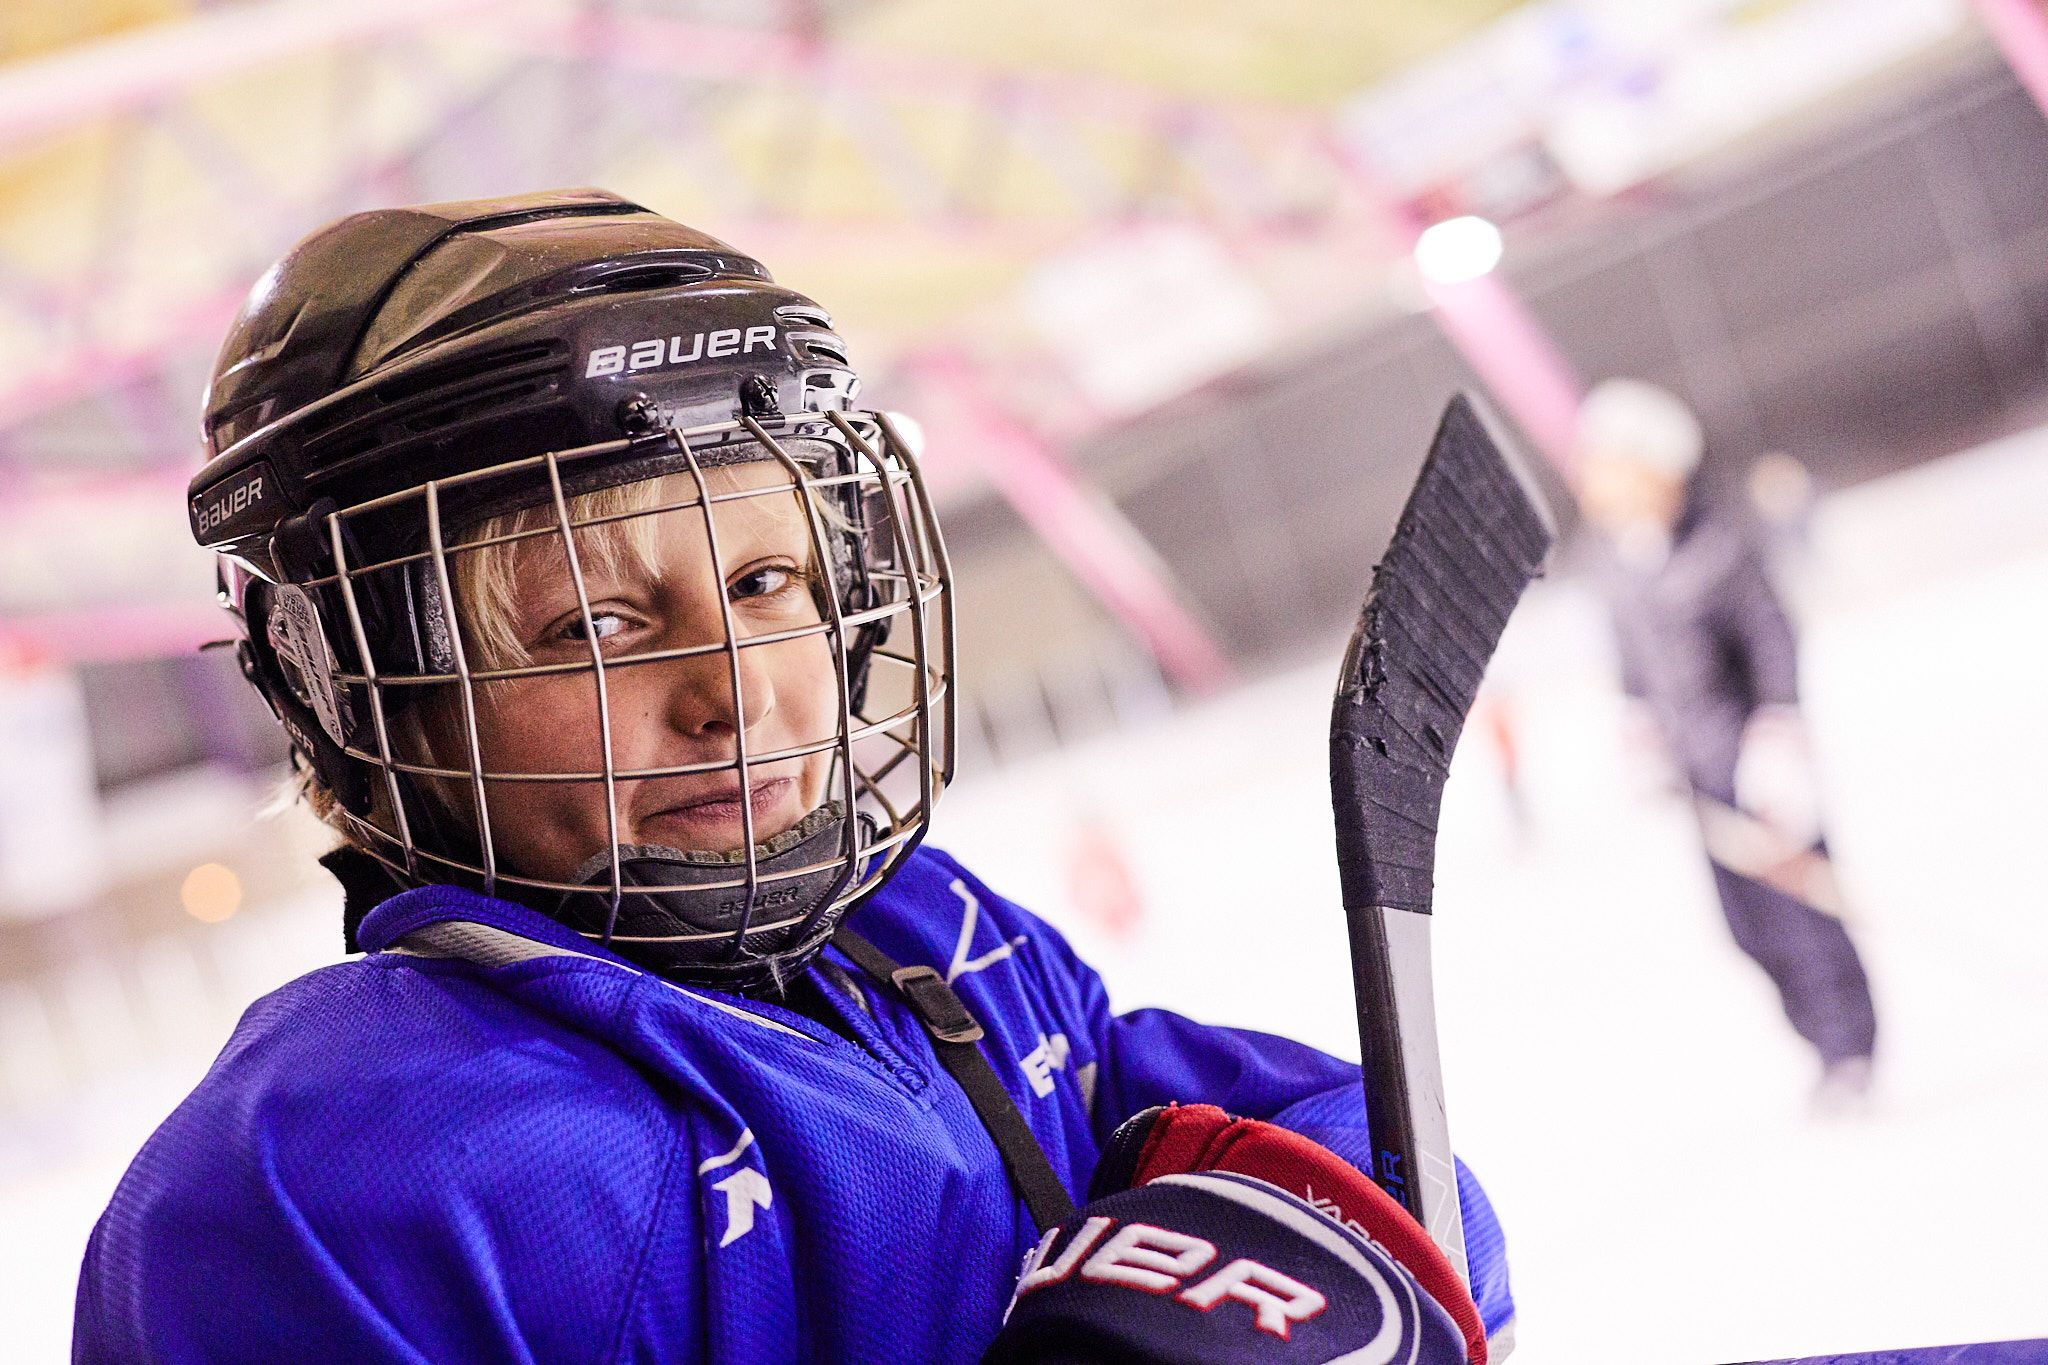 Our hockey star stays cool on the ice